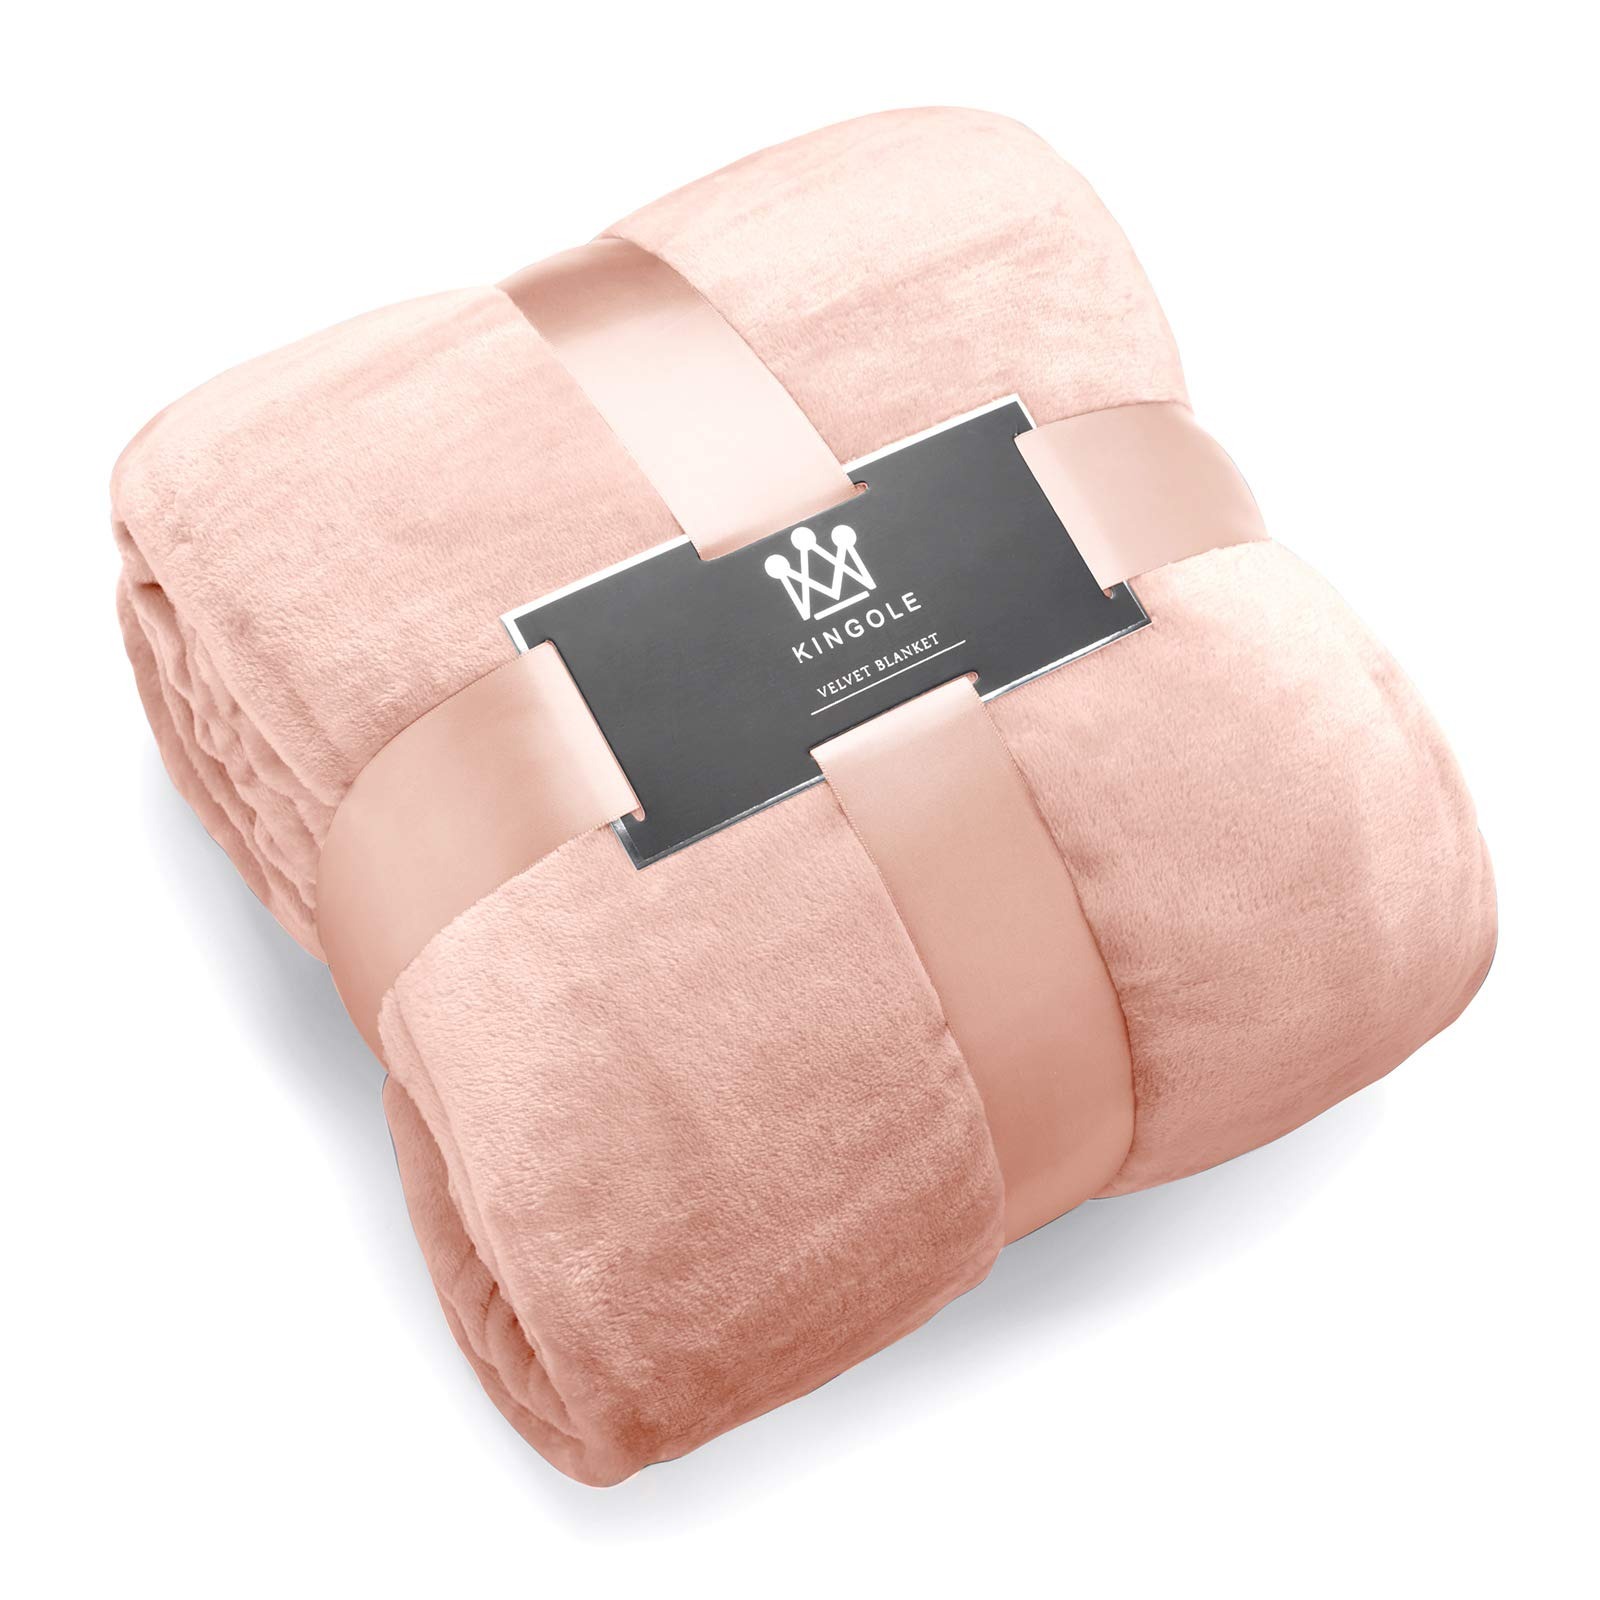 Kingole Flannel Fleece Microfiber Throw Blanket, Luxury Timid Pink Queen Size Lightweight Cozy Couch Bed Super Soft and Warm Plush Solid Color 350GSM (90 x 90 inches)